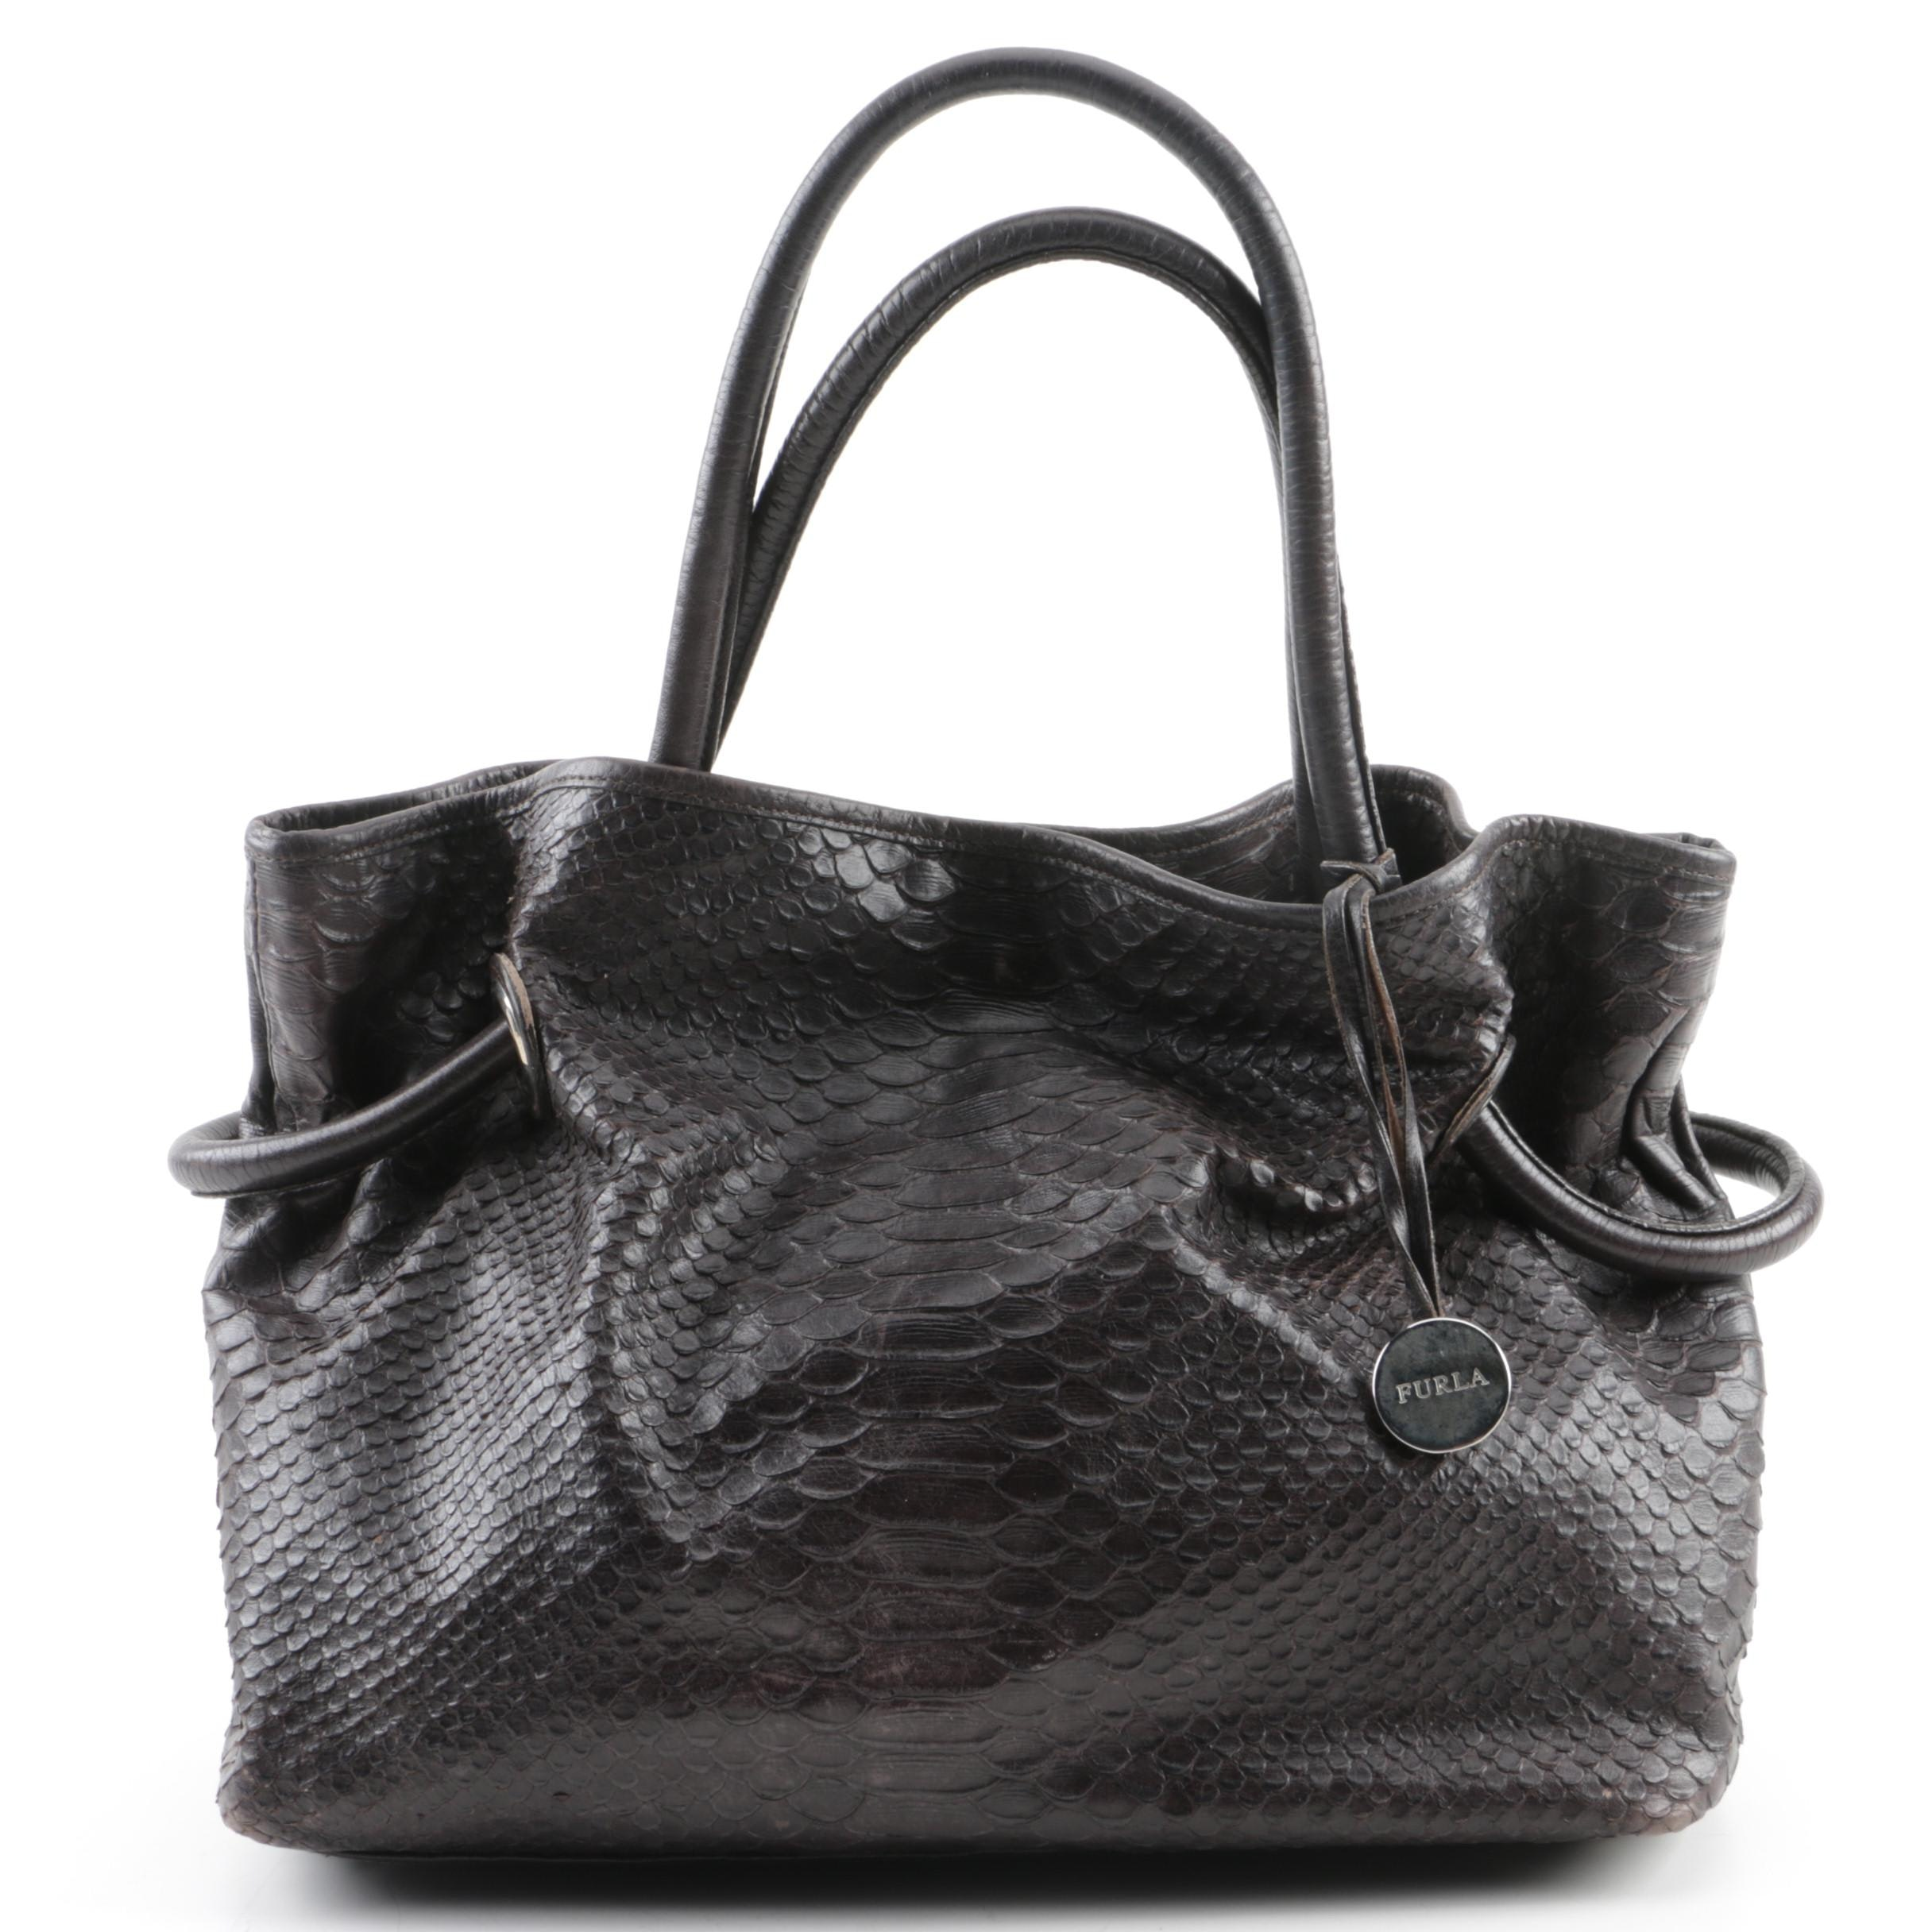 Furla Dark Brown Python Embossed Leather Shoulder Bag